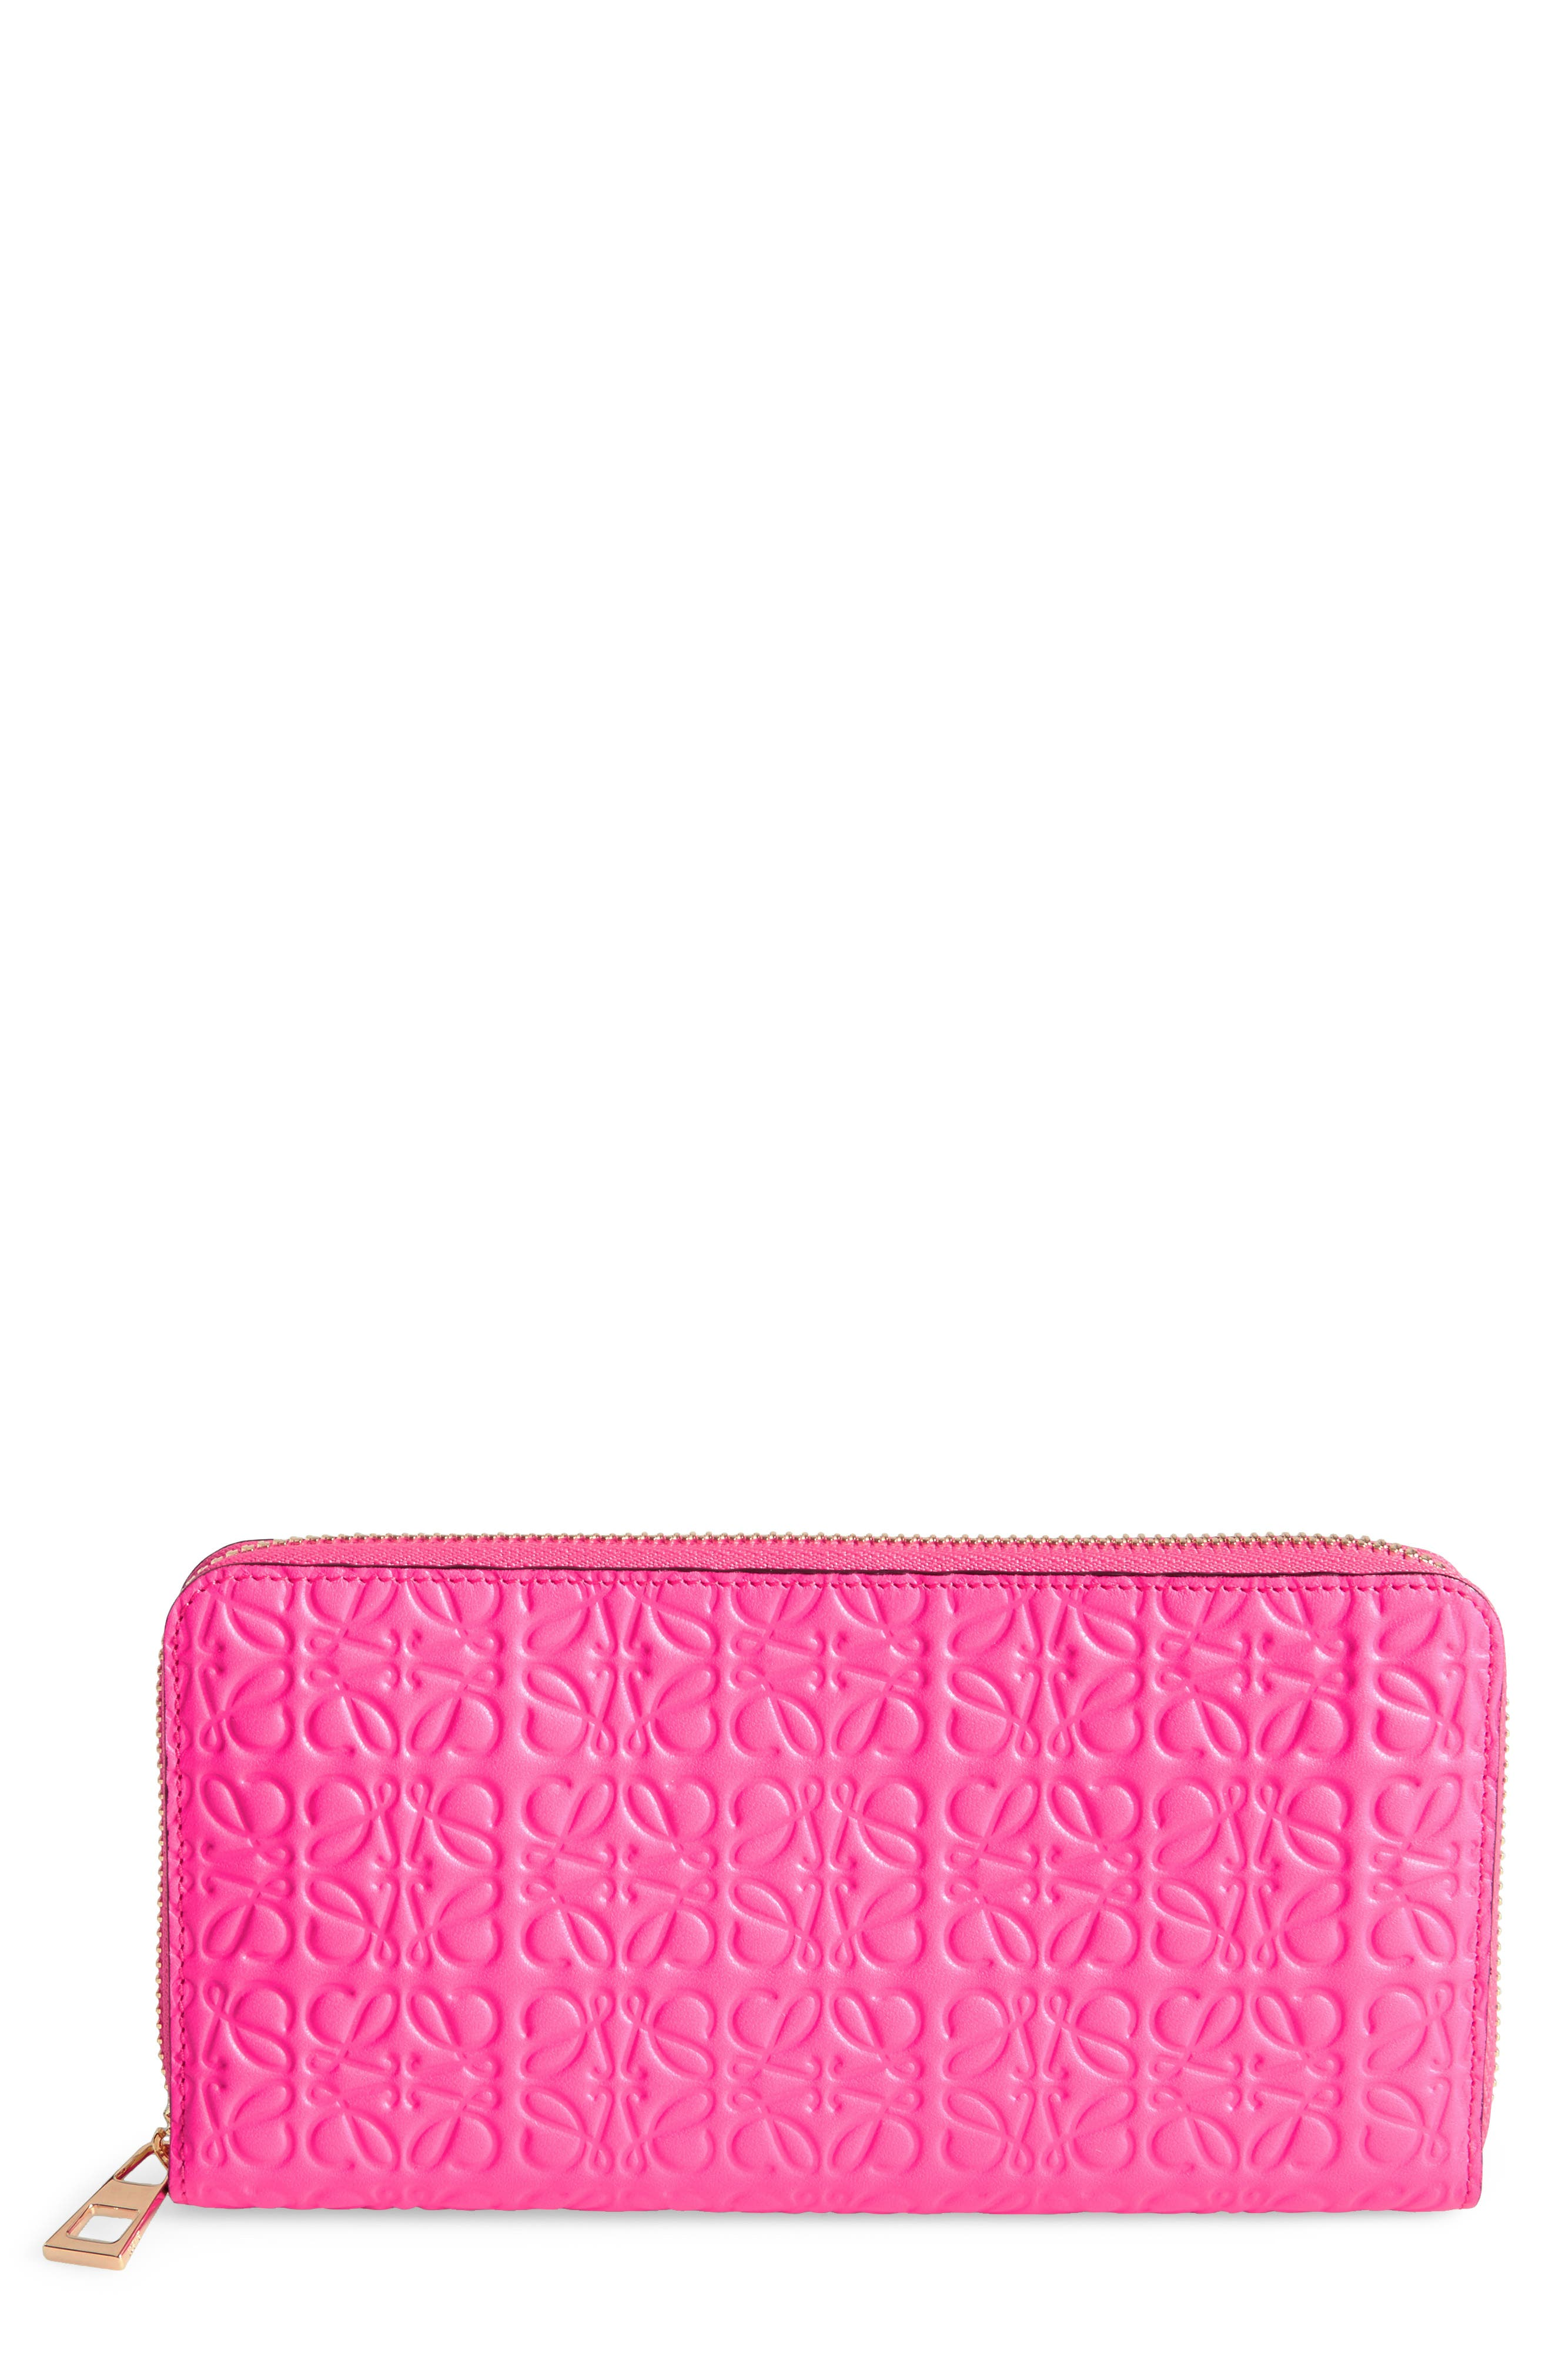 Leather Zip Around Wallet,                             Main thumbnail 1, color,                             Shocking Pink